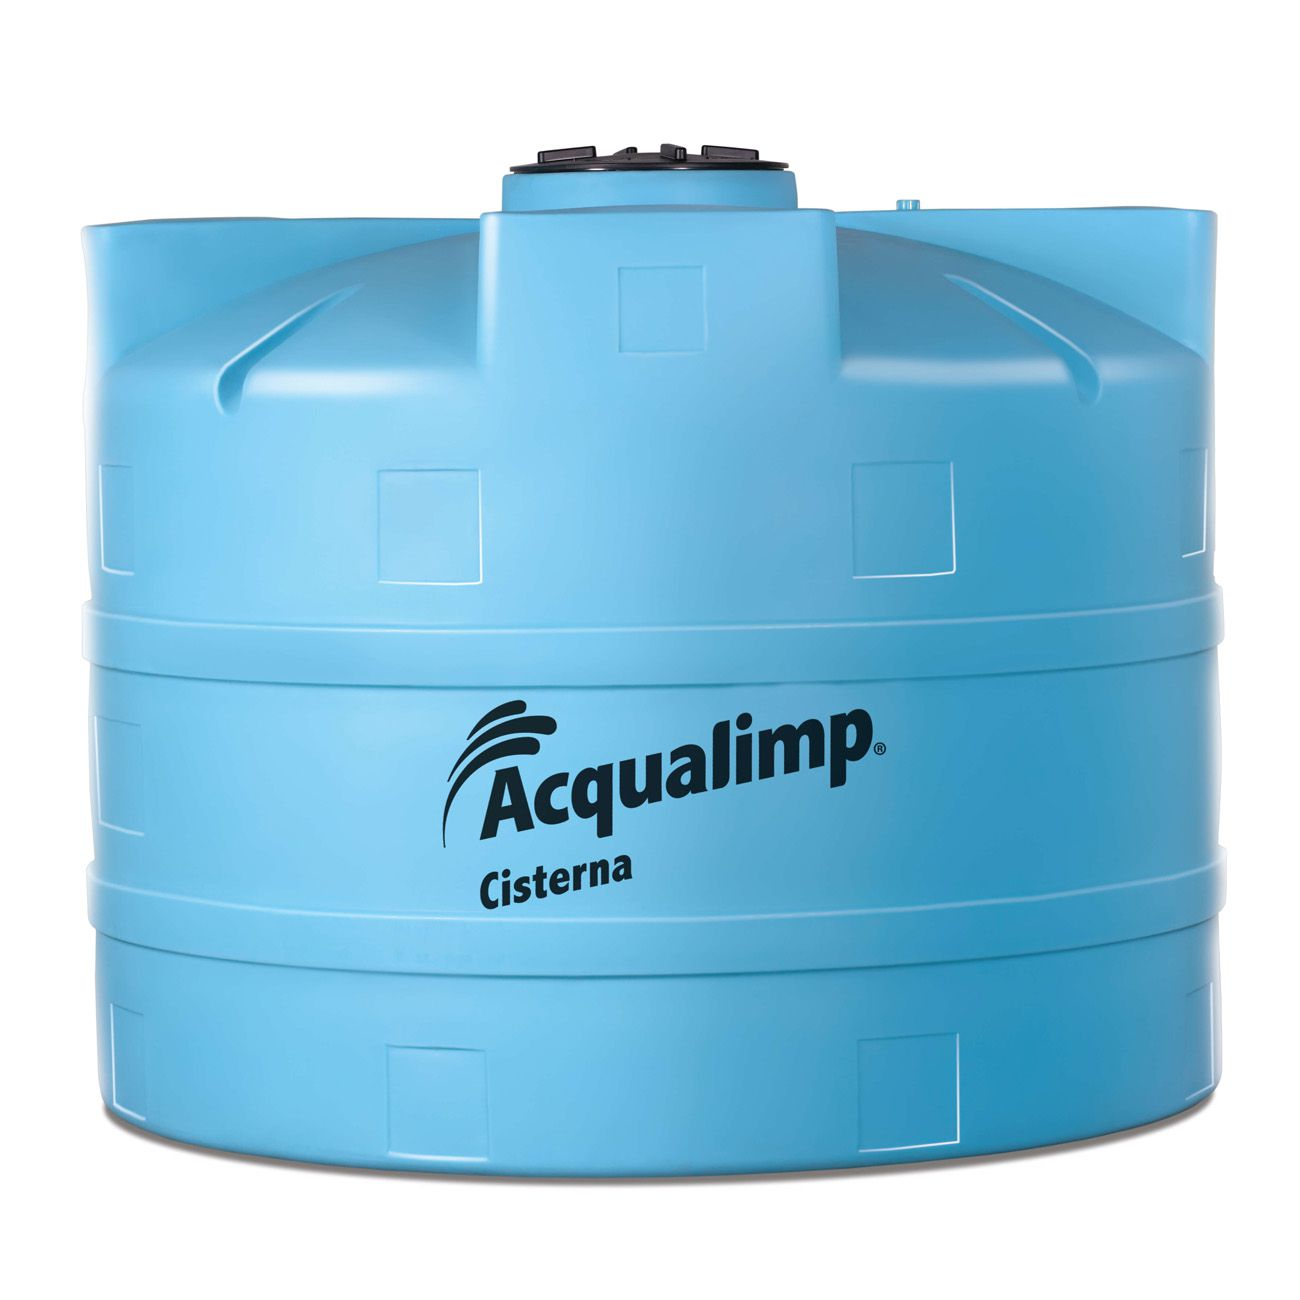 Cisterna Acqualimp